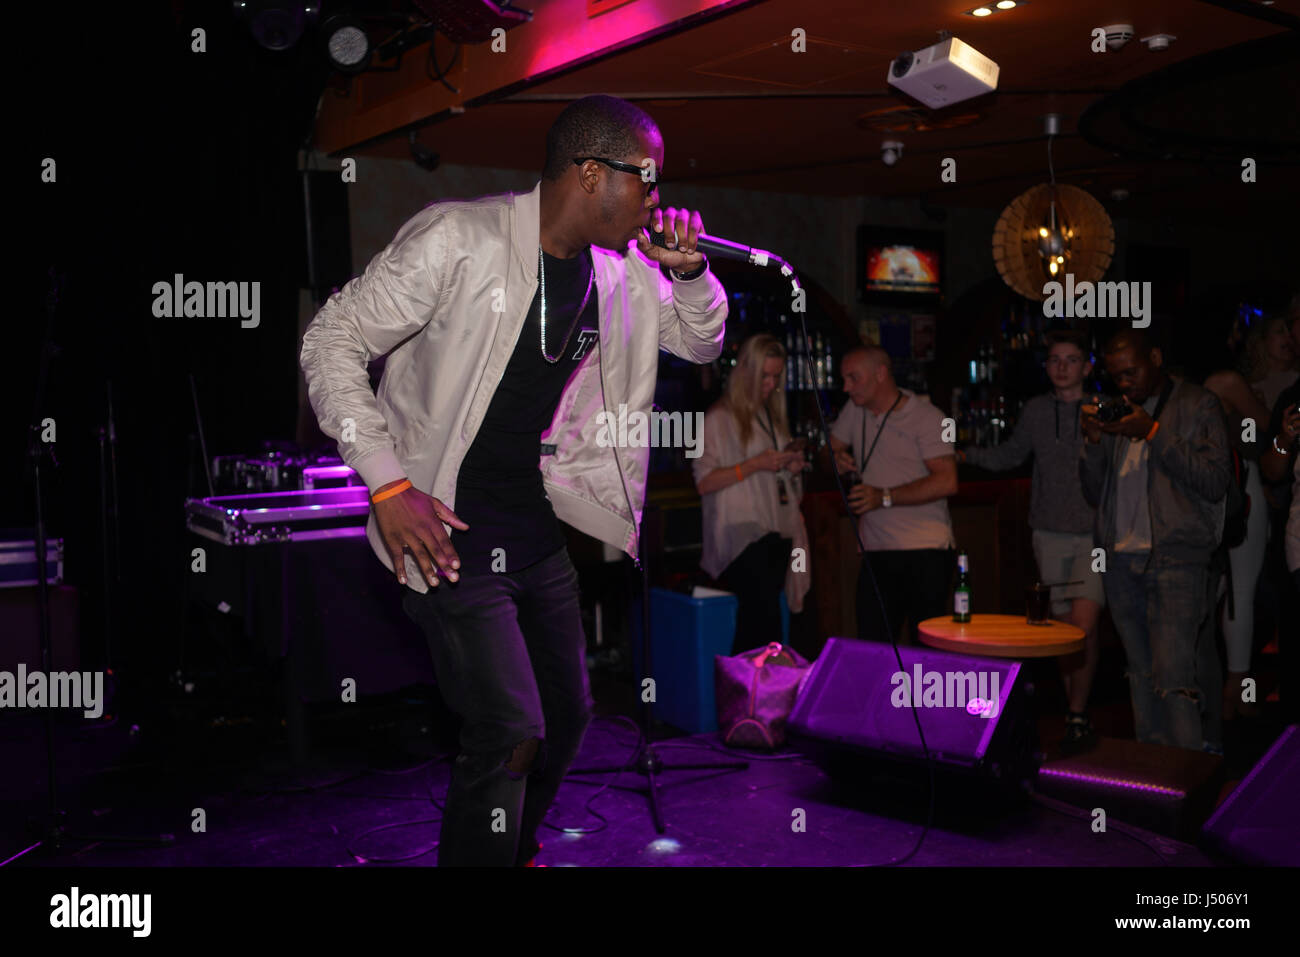 London, England, UK. 14th May, 2017. Jerome Thomas (TCO) is a rapper attends the after party of the BBL Play-Off - Stock Image